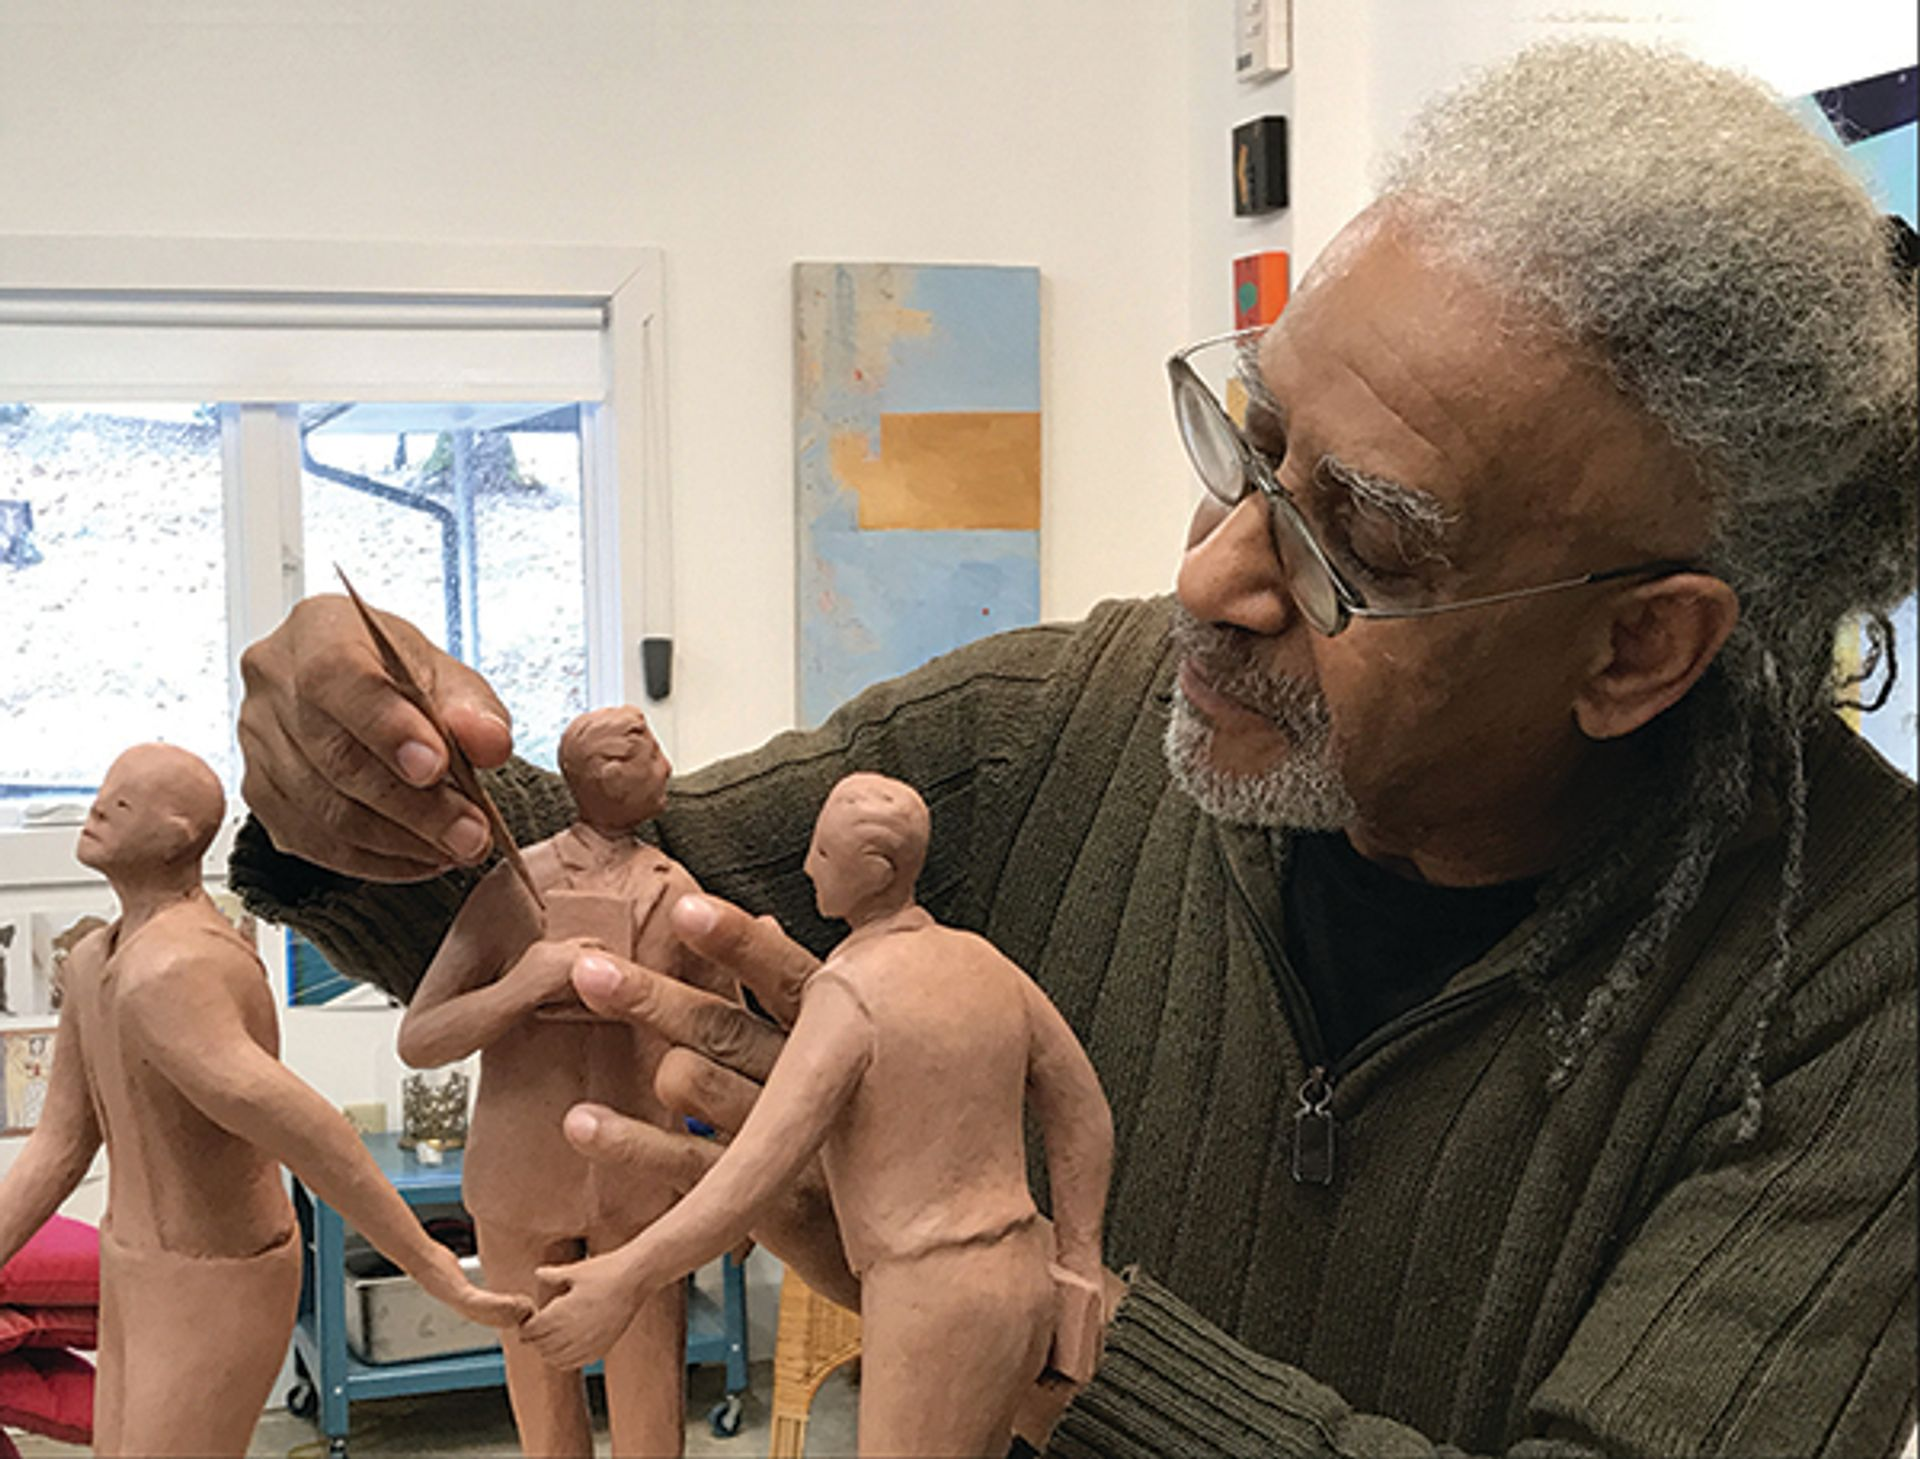 The artist Jerome Meadows in his studio courtesy the artist